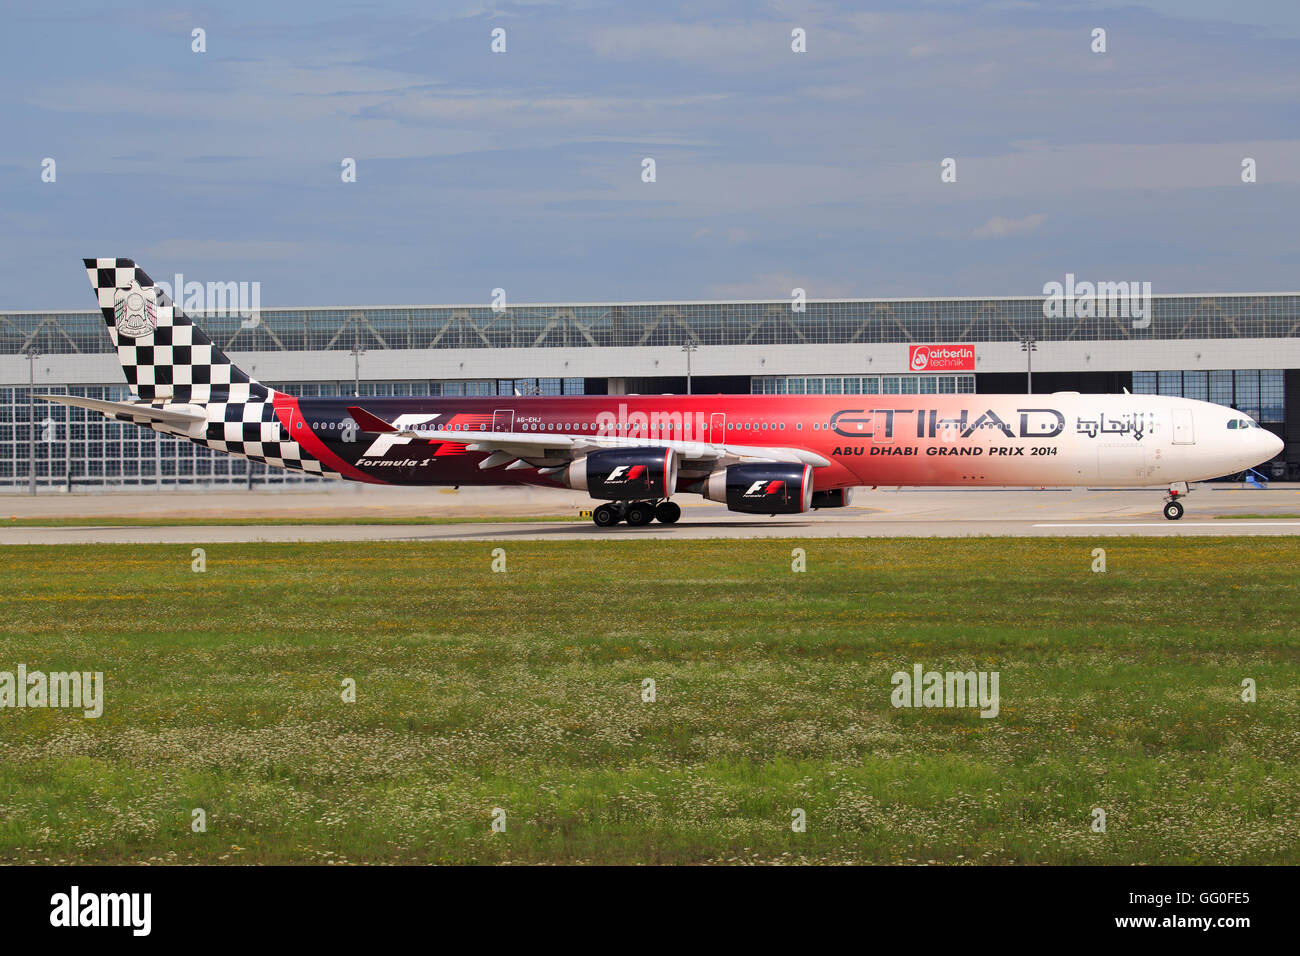 Munic/Germany August 9, 2014: Airbus 340-600 from Etihad Airways with Formula 1 special livery, ready to take off - Stock Image